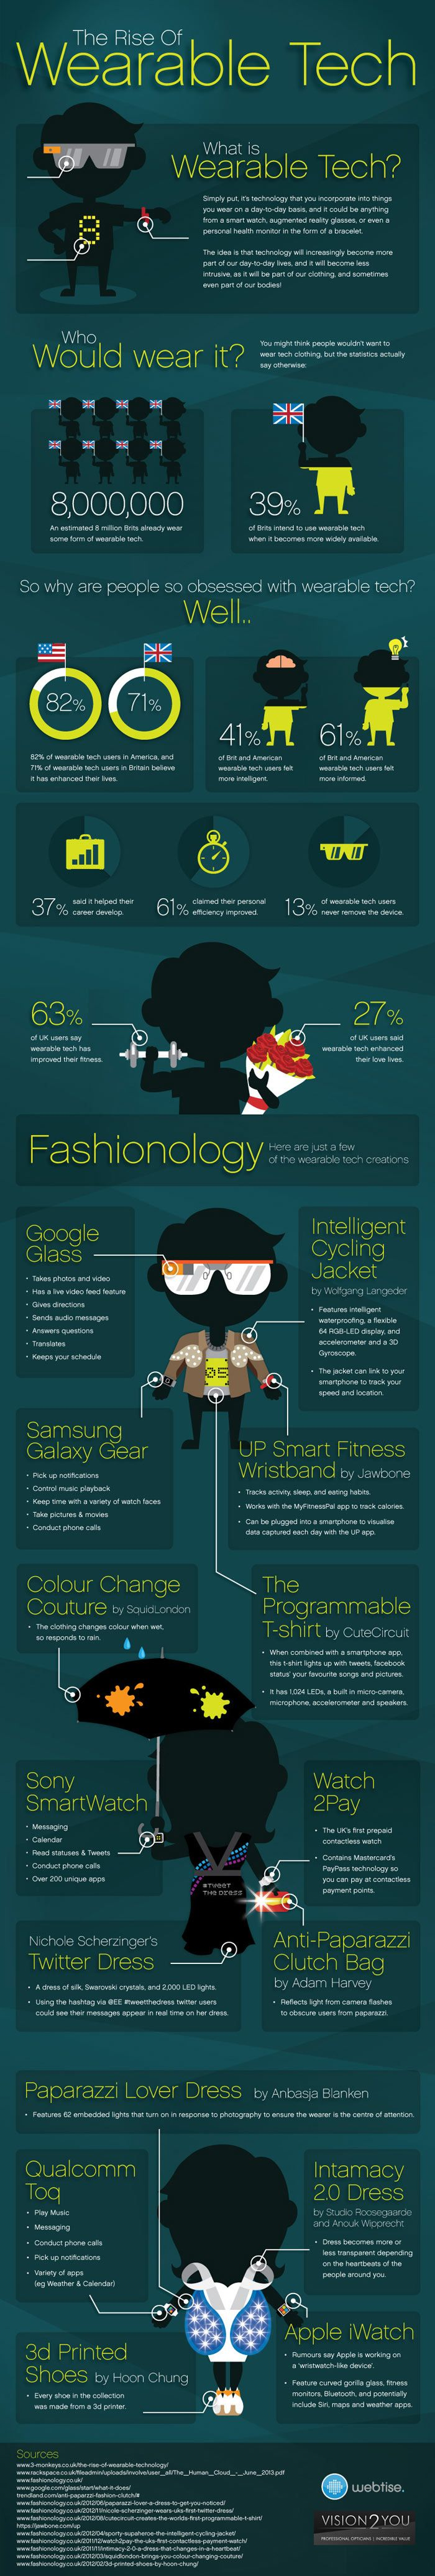 The rise of wearable technology – infographic